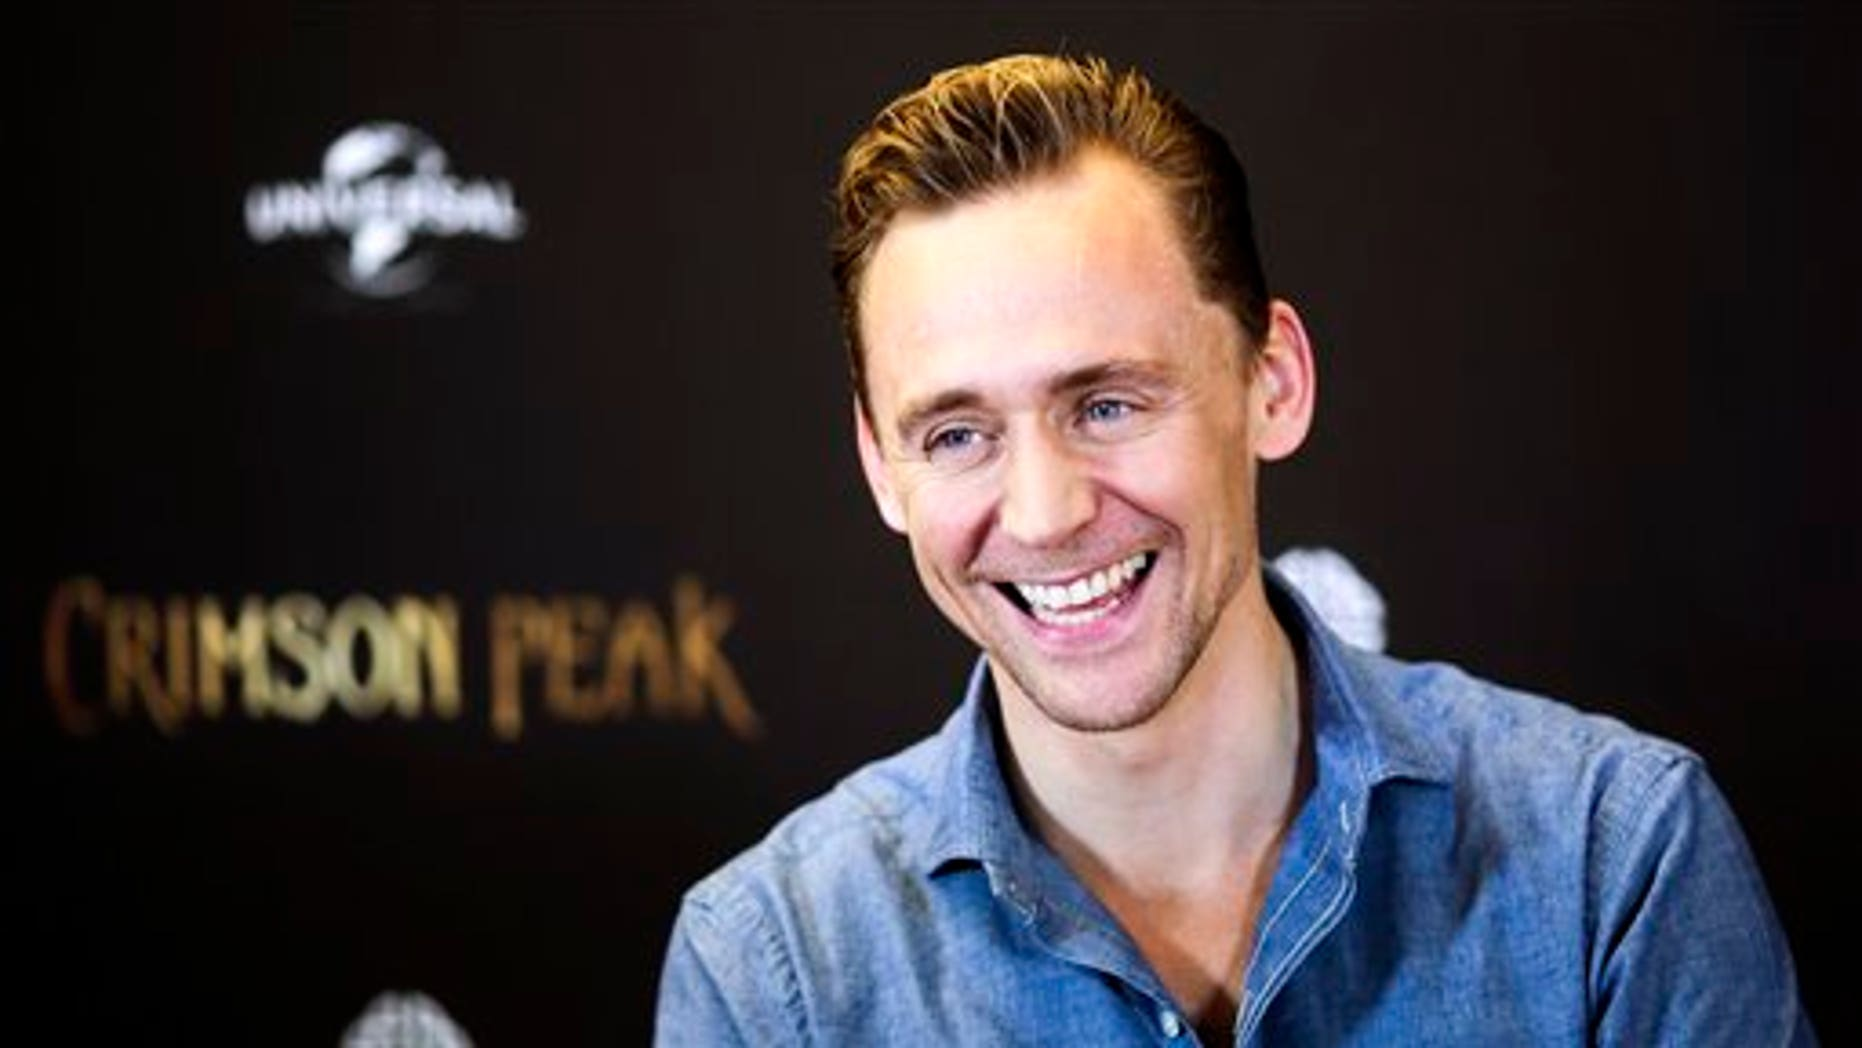 """Actor Tom Hiddleston poses during a photo-call to promote the film """"Crimson Peak"""" in Berlin, Germany, on Sept. 30, 2015. (AP Photo)"""